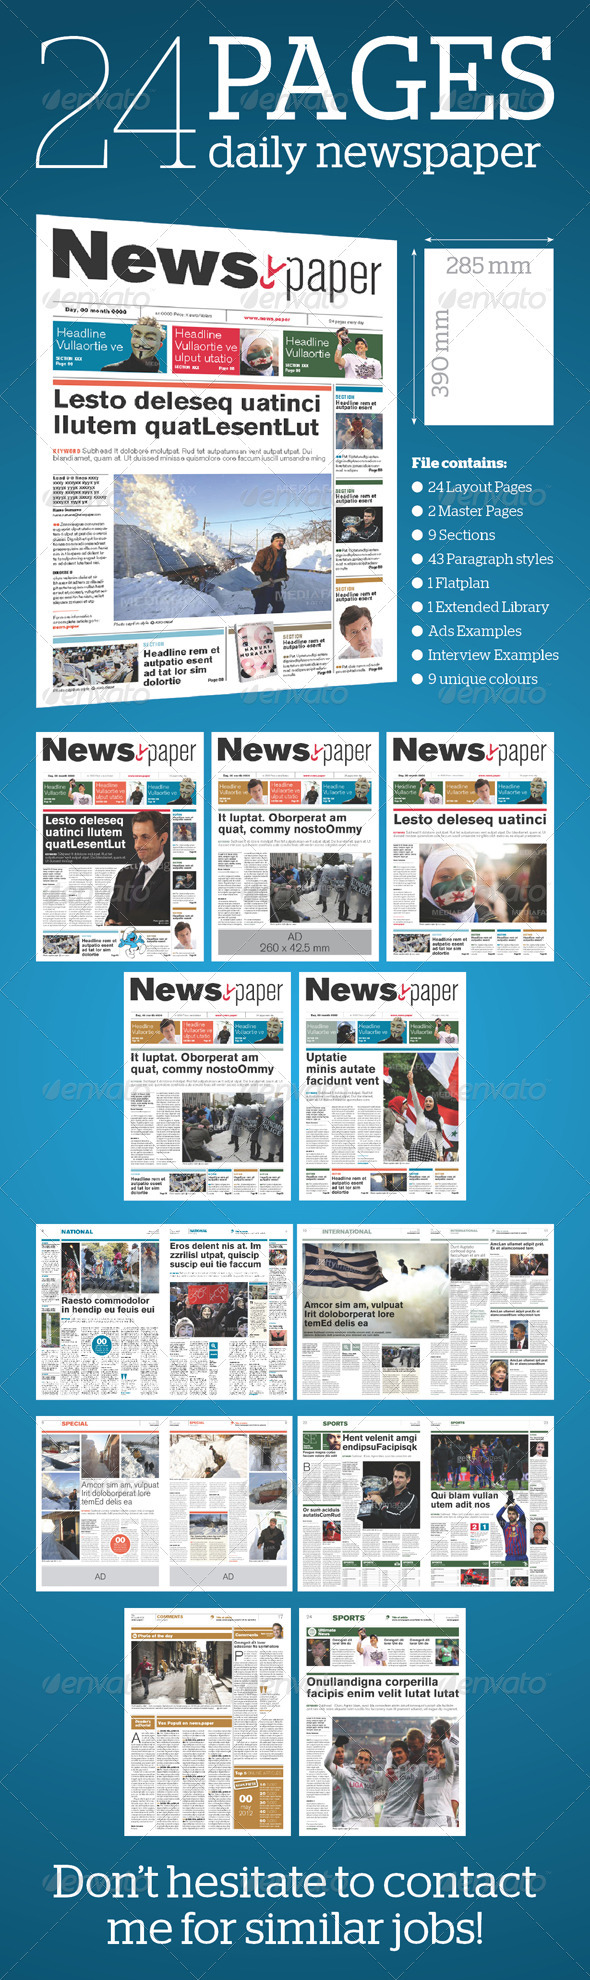 24 pages daily newspaper by moors graphicriver 24 pages daily newspaper newsletters print templates pronofoot35fo Choice Image